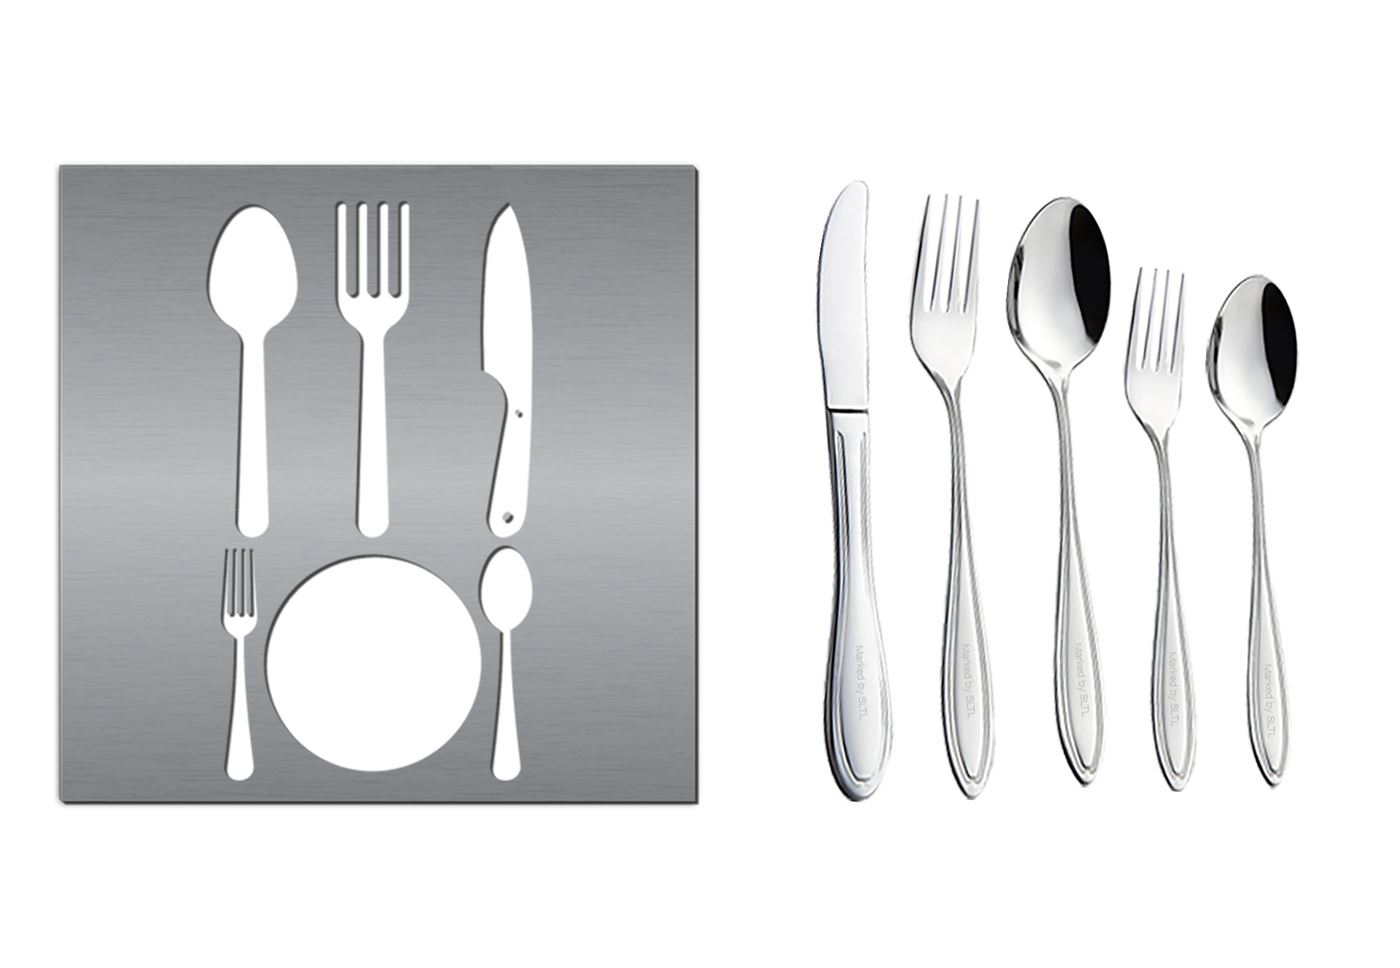 Gives perfect shape for Utensils